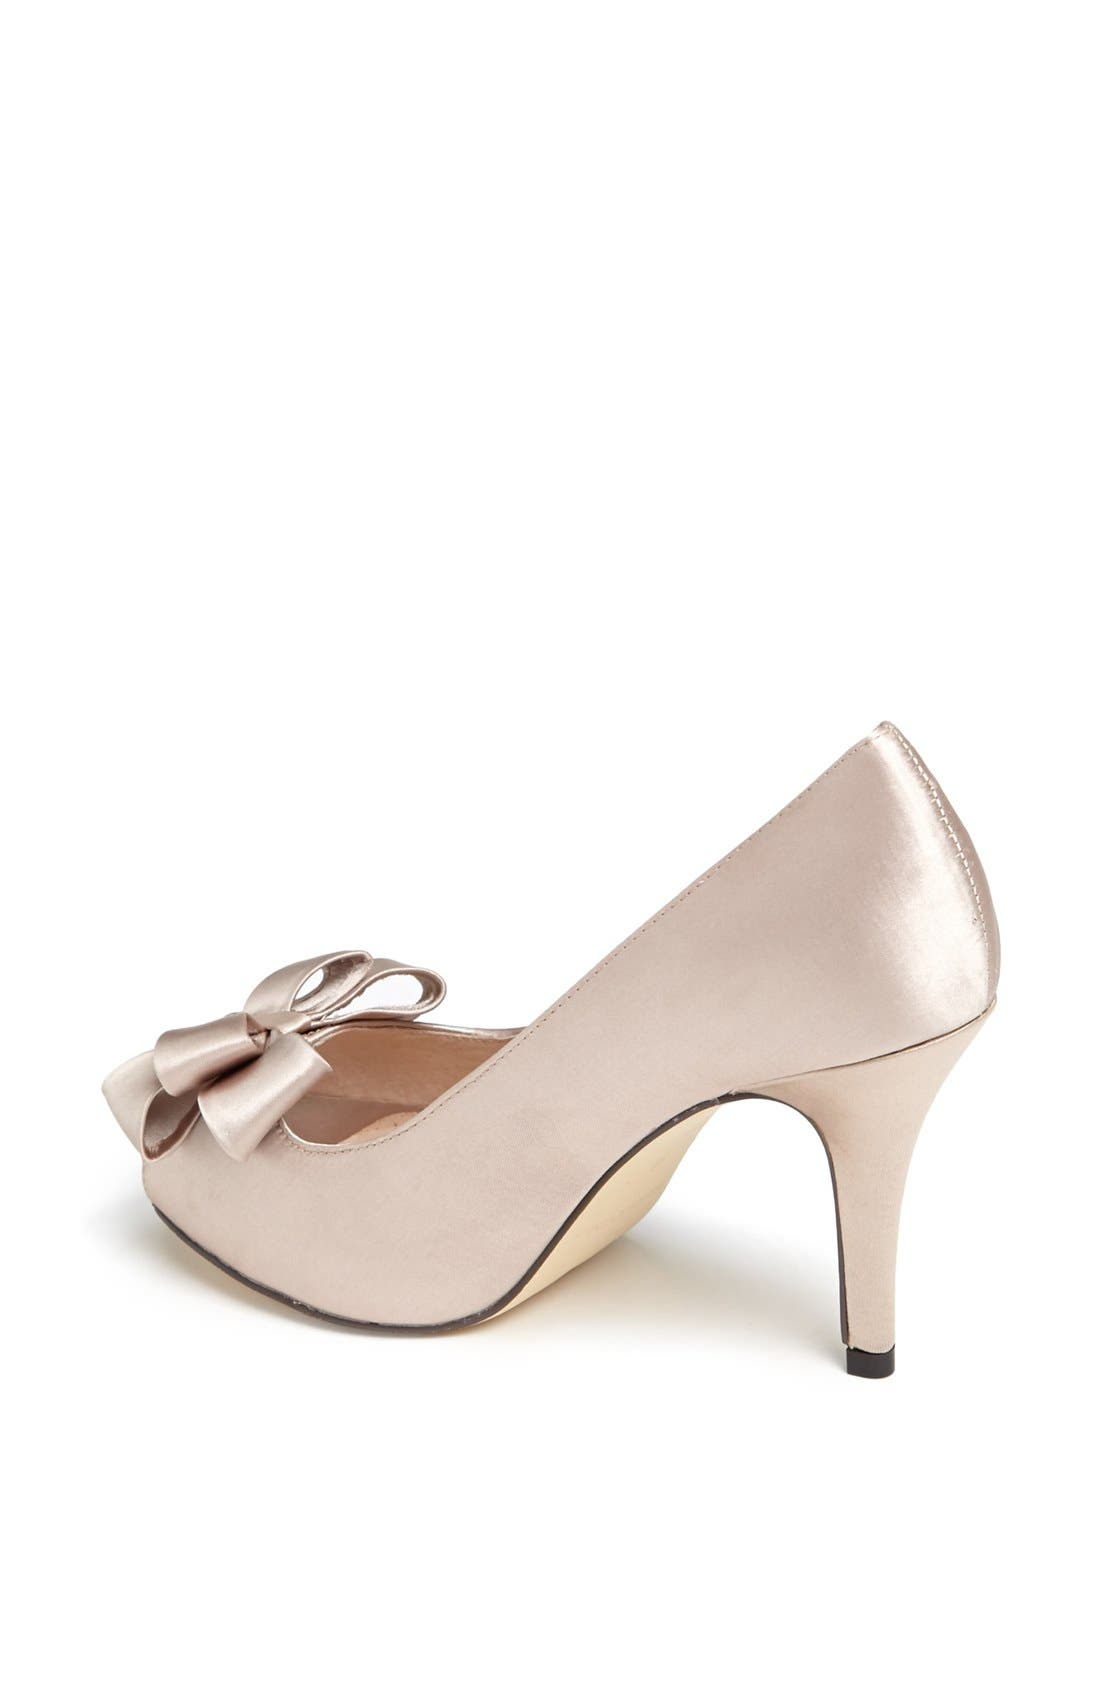 Bow Peep Toe Pump,                             Alternate thumbnail 3, color,                             021